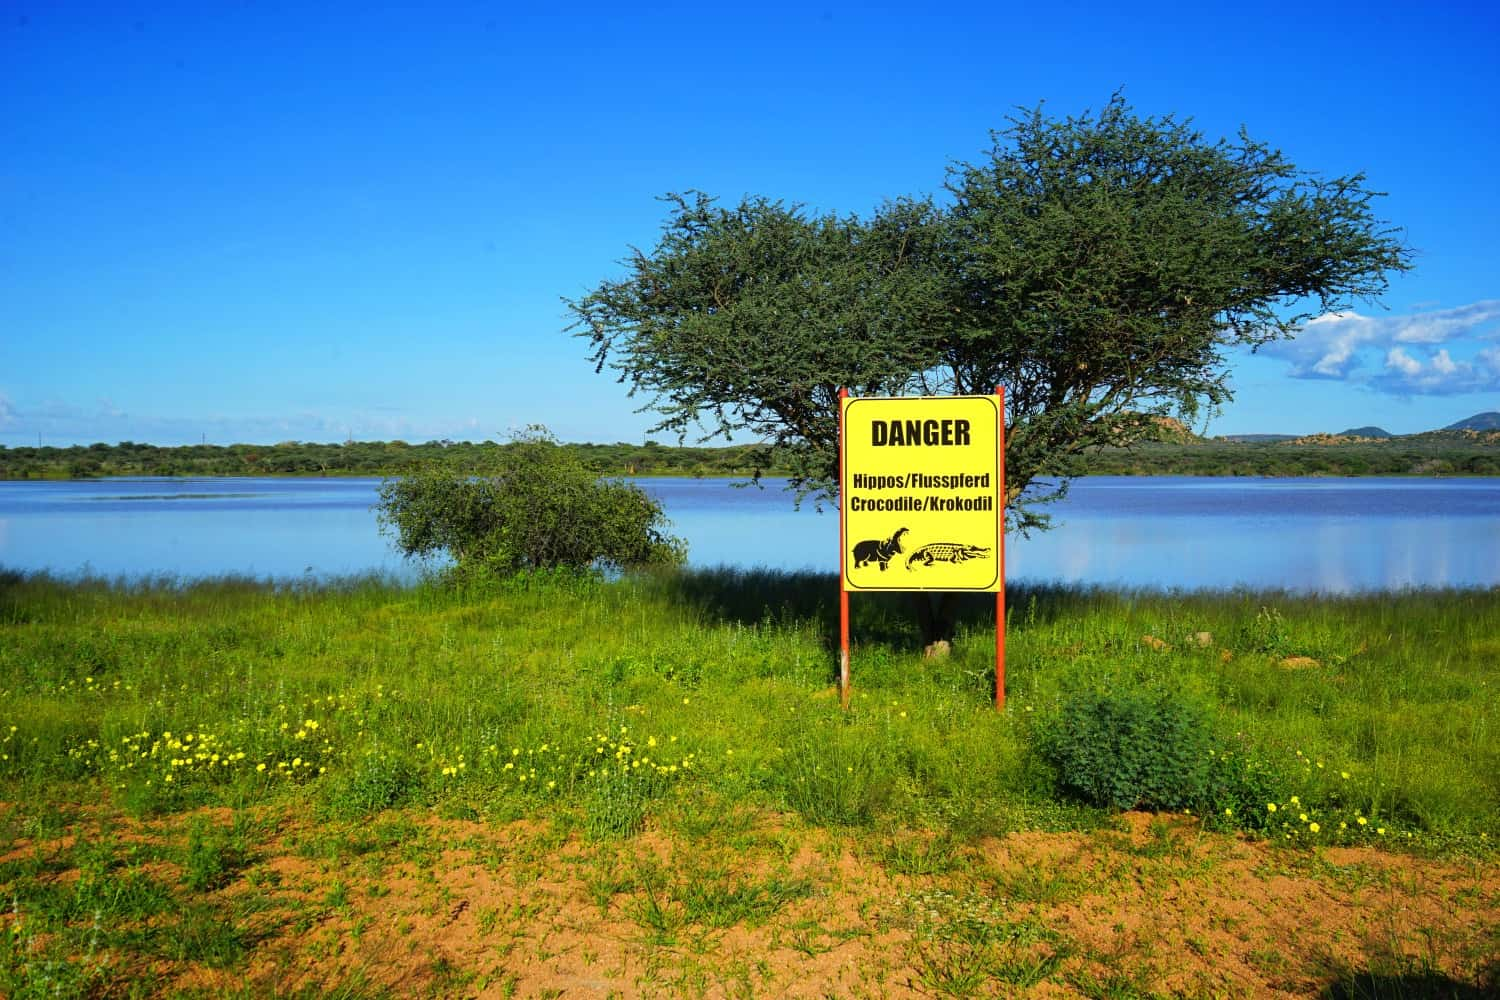 Hippo Crocodile Warning Sign Namibia